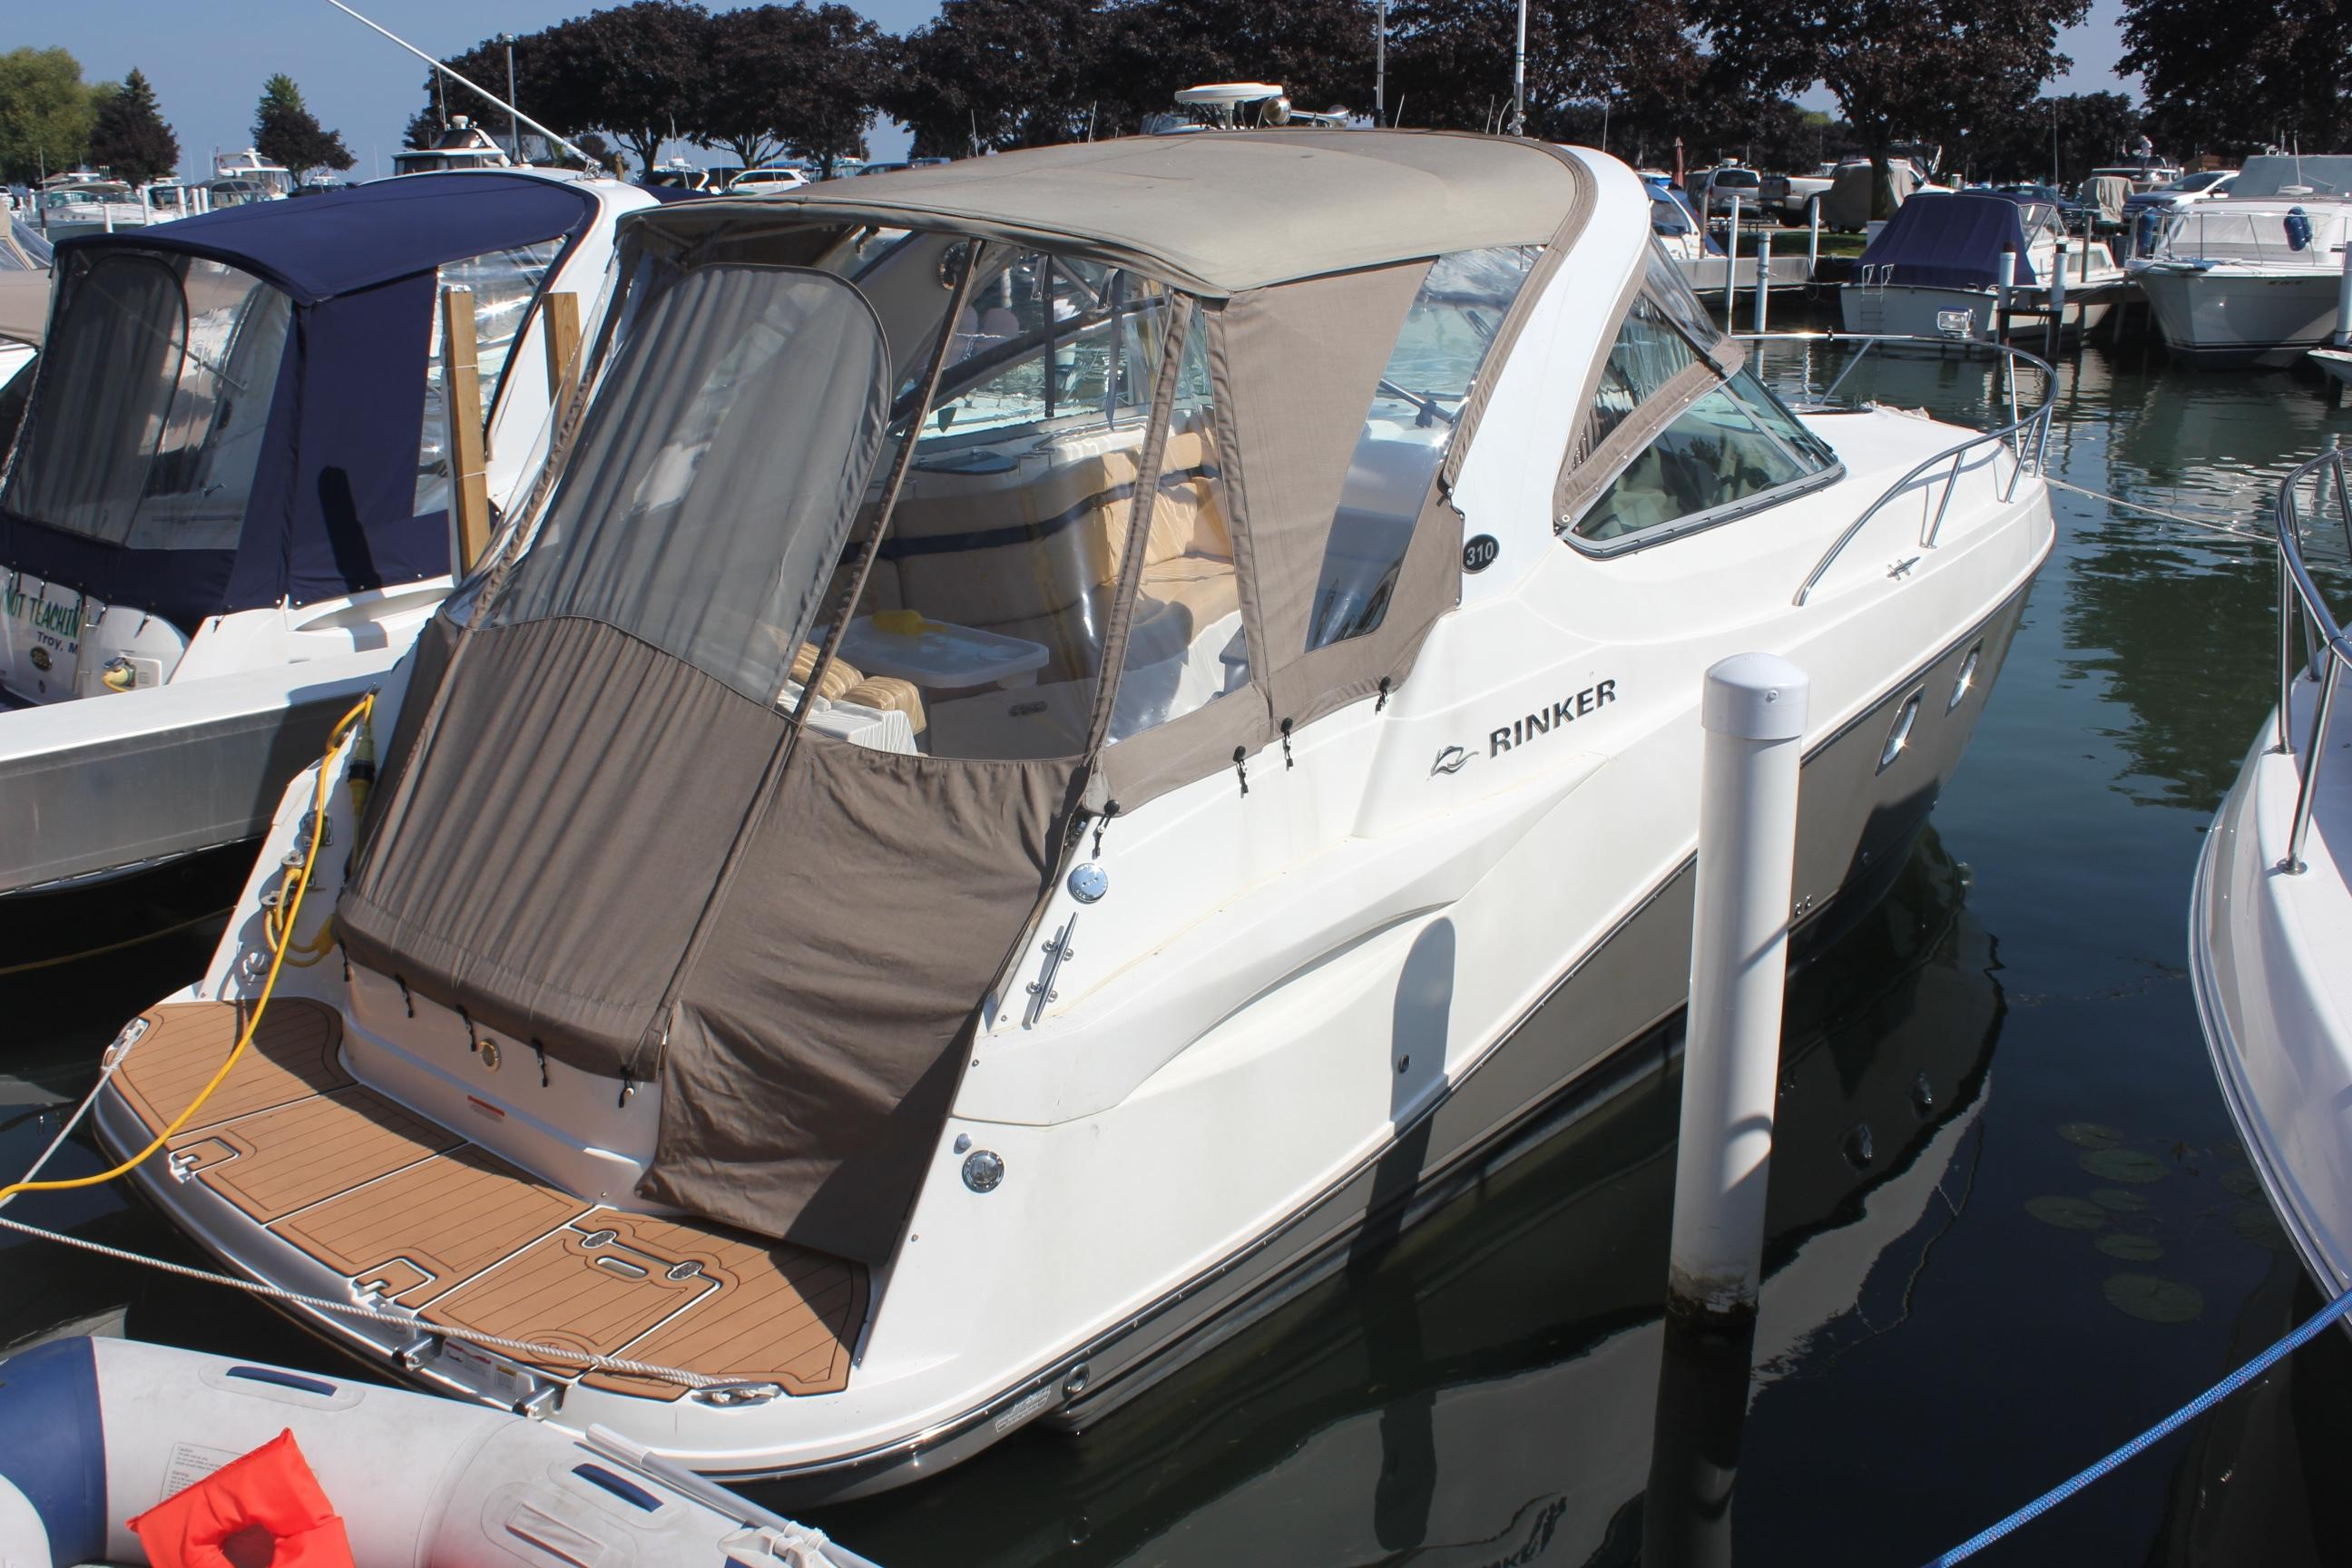 Cruisers Yachts Wiring Diagram Electrical Diagrams 1989 Rinker 31 Foot Boat Find U2022 Small